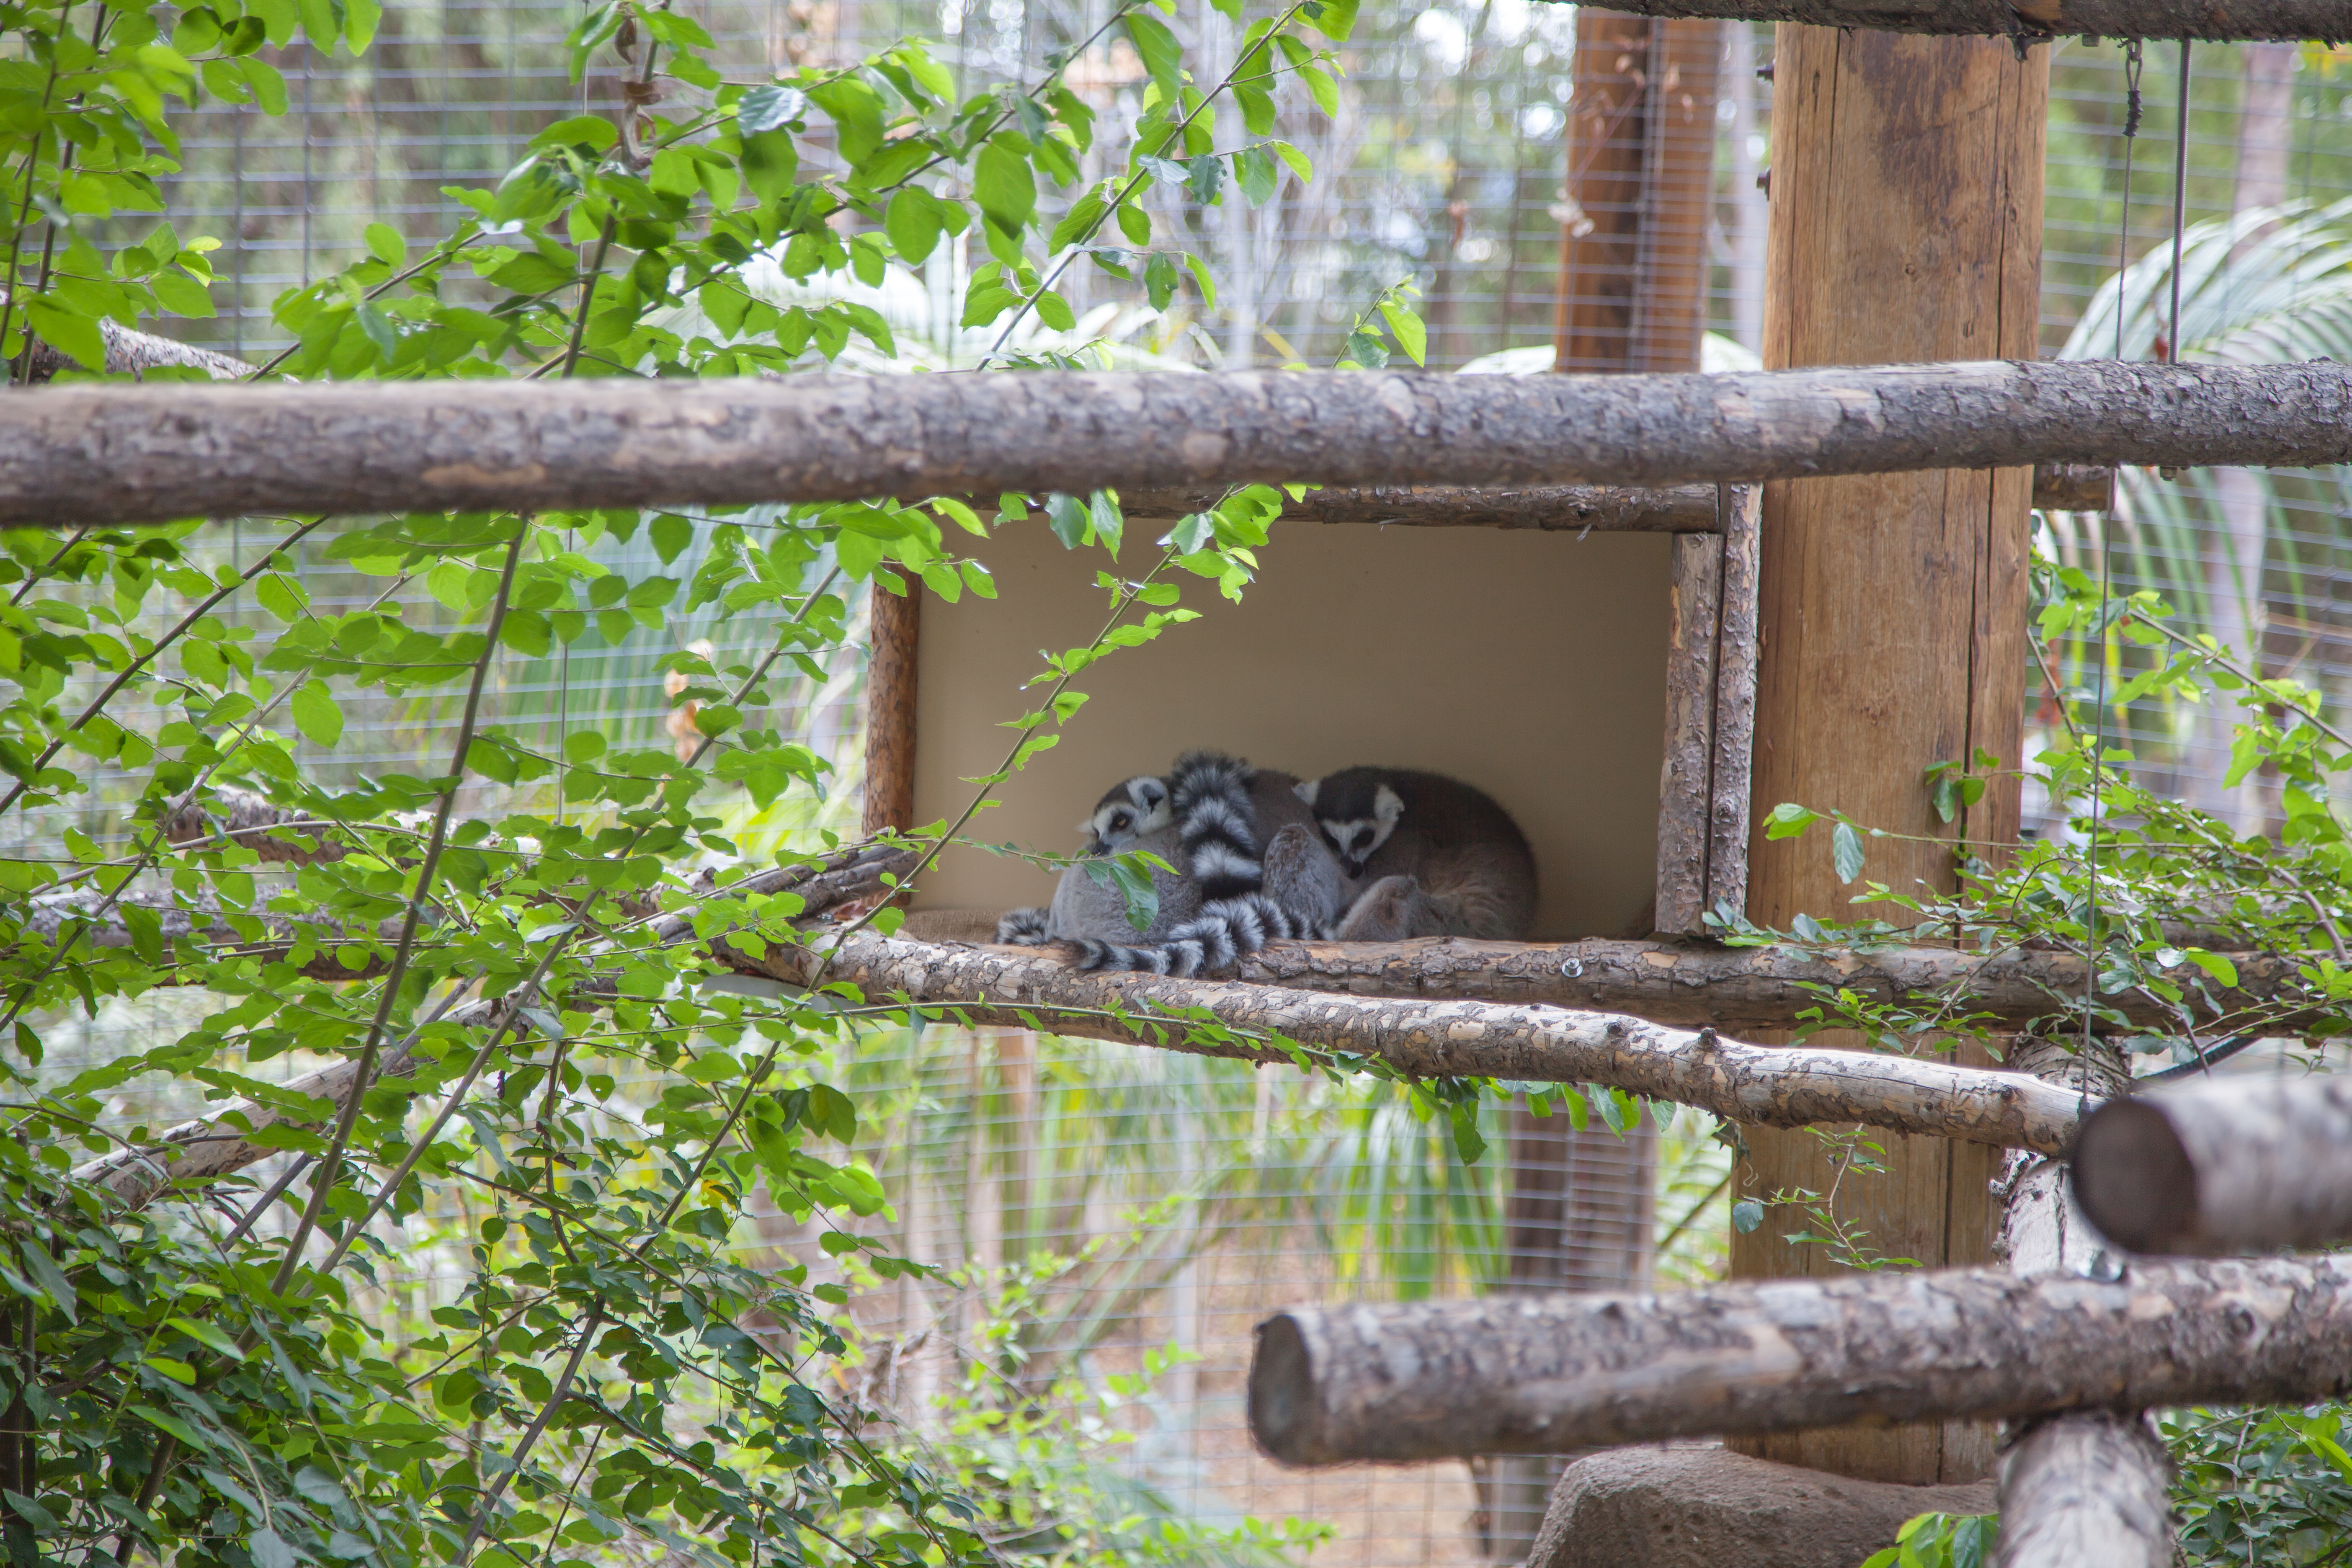 some lazy lemurs